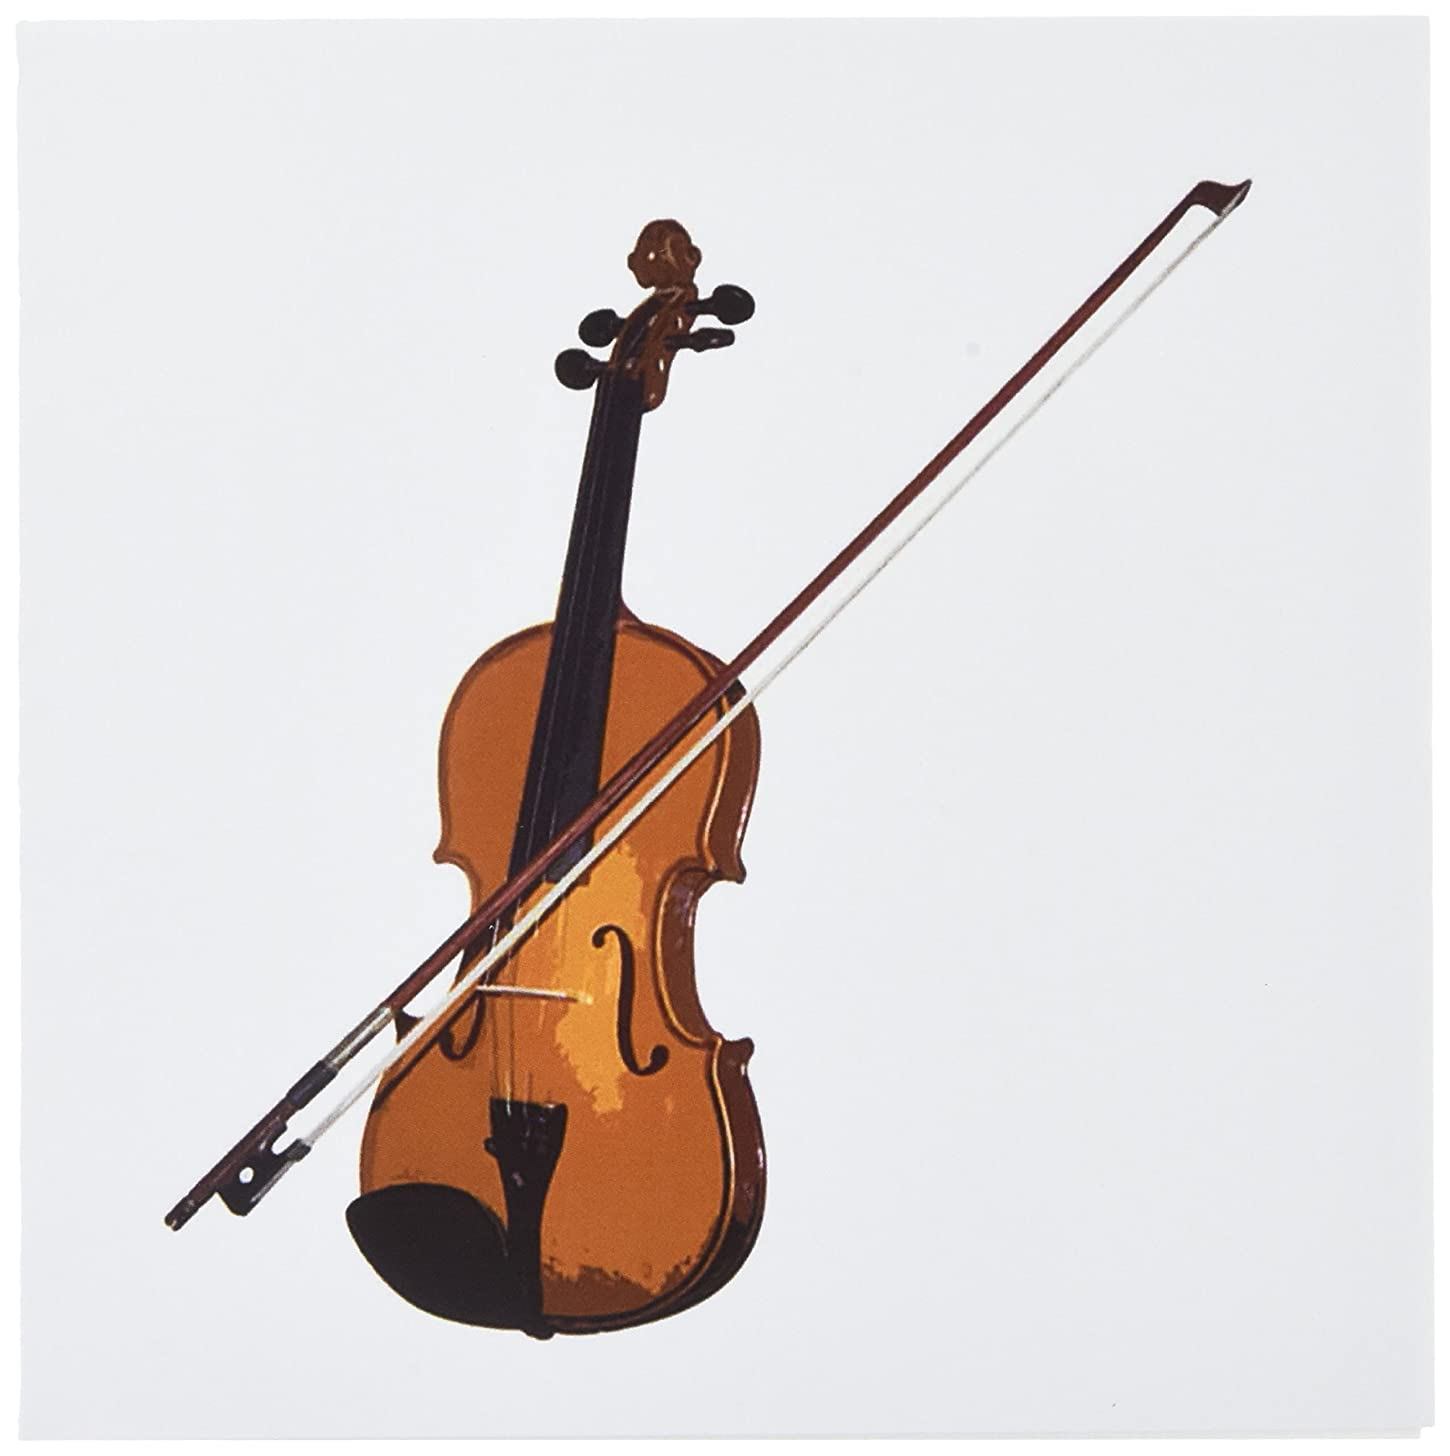 3dRose Violin - Greeting Cards, 6 x 6 inches, set of 6 (gc_1269_1)